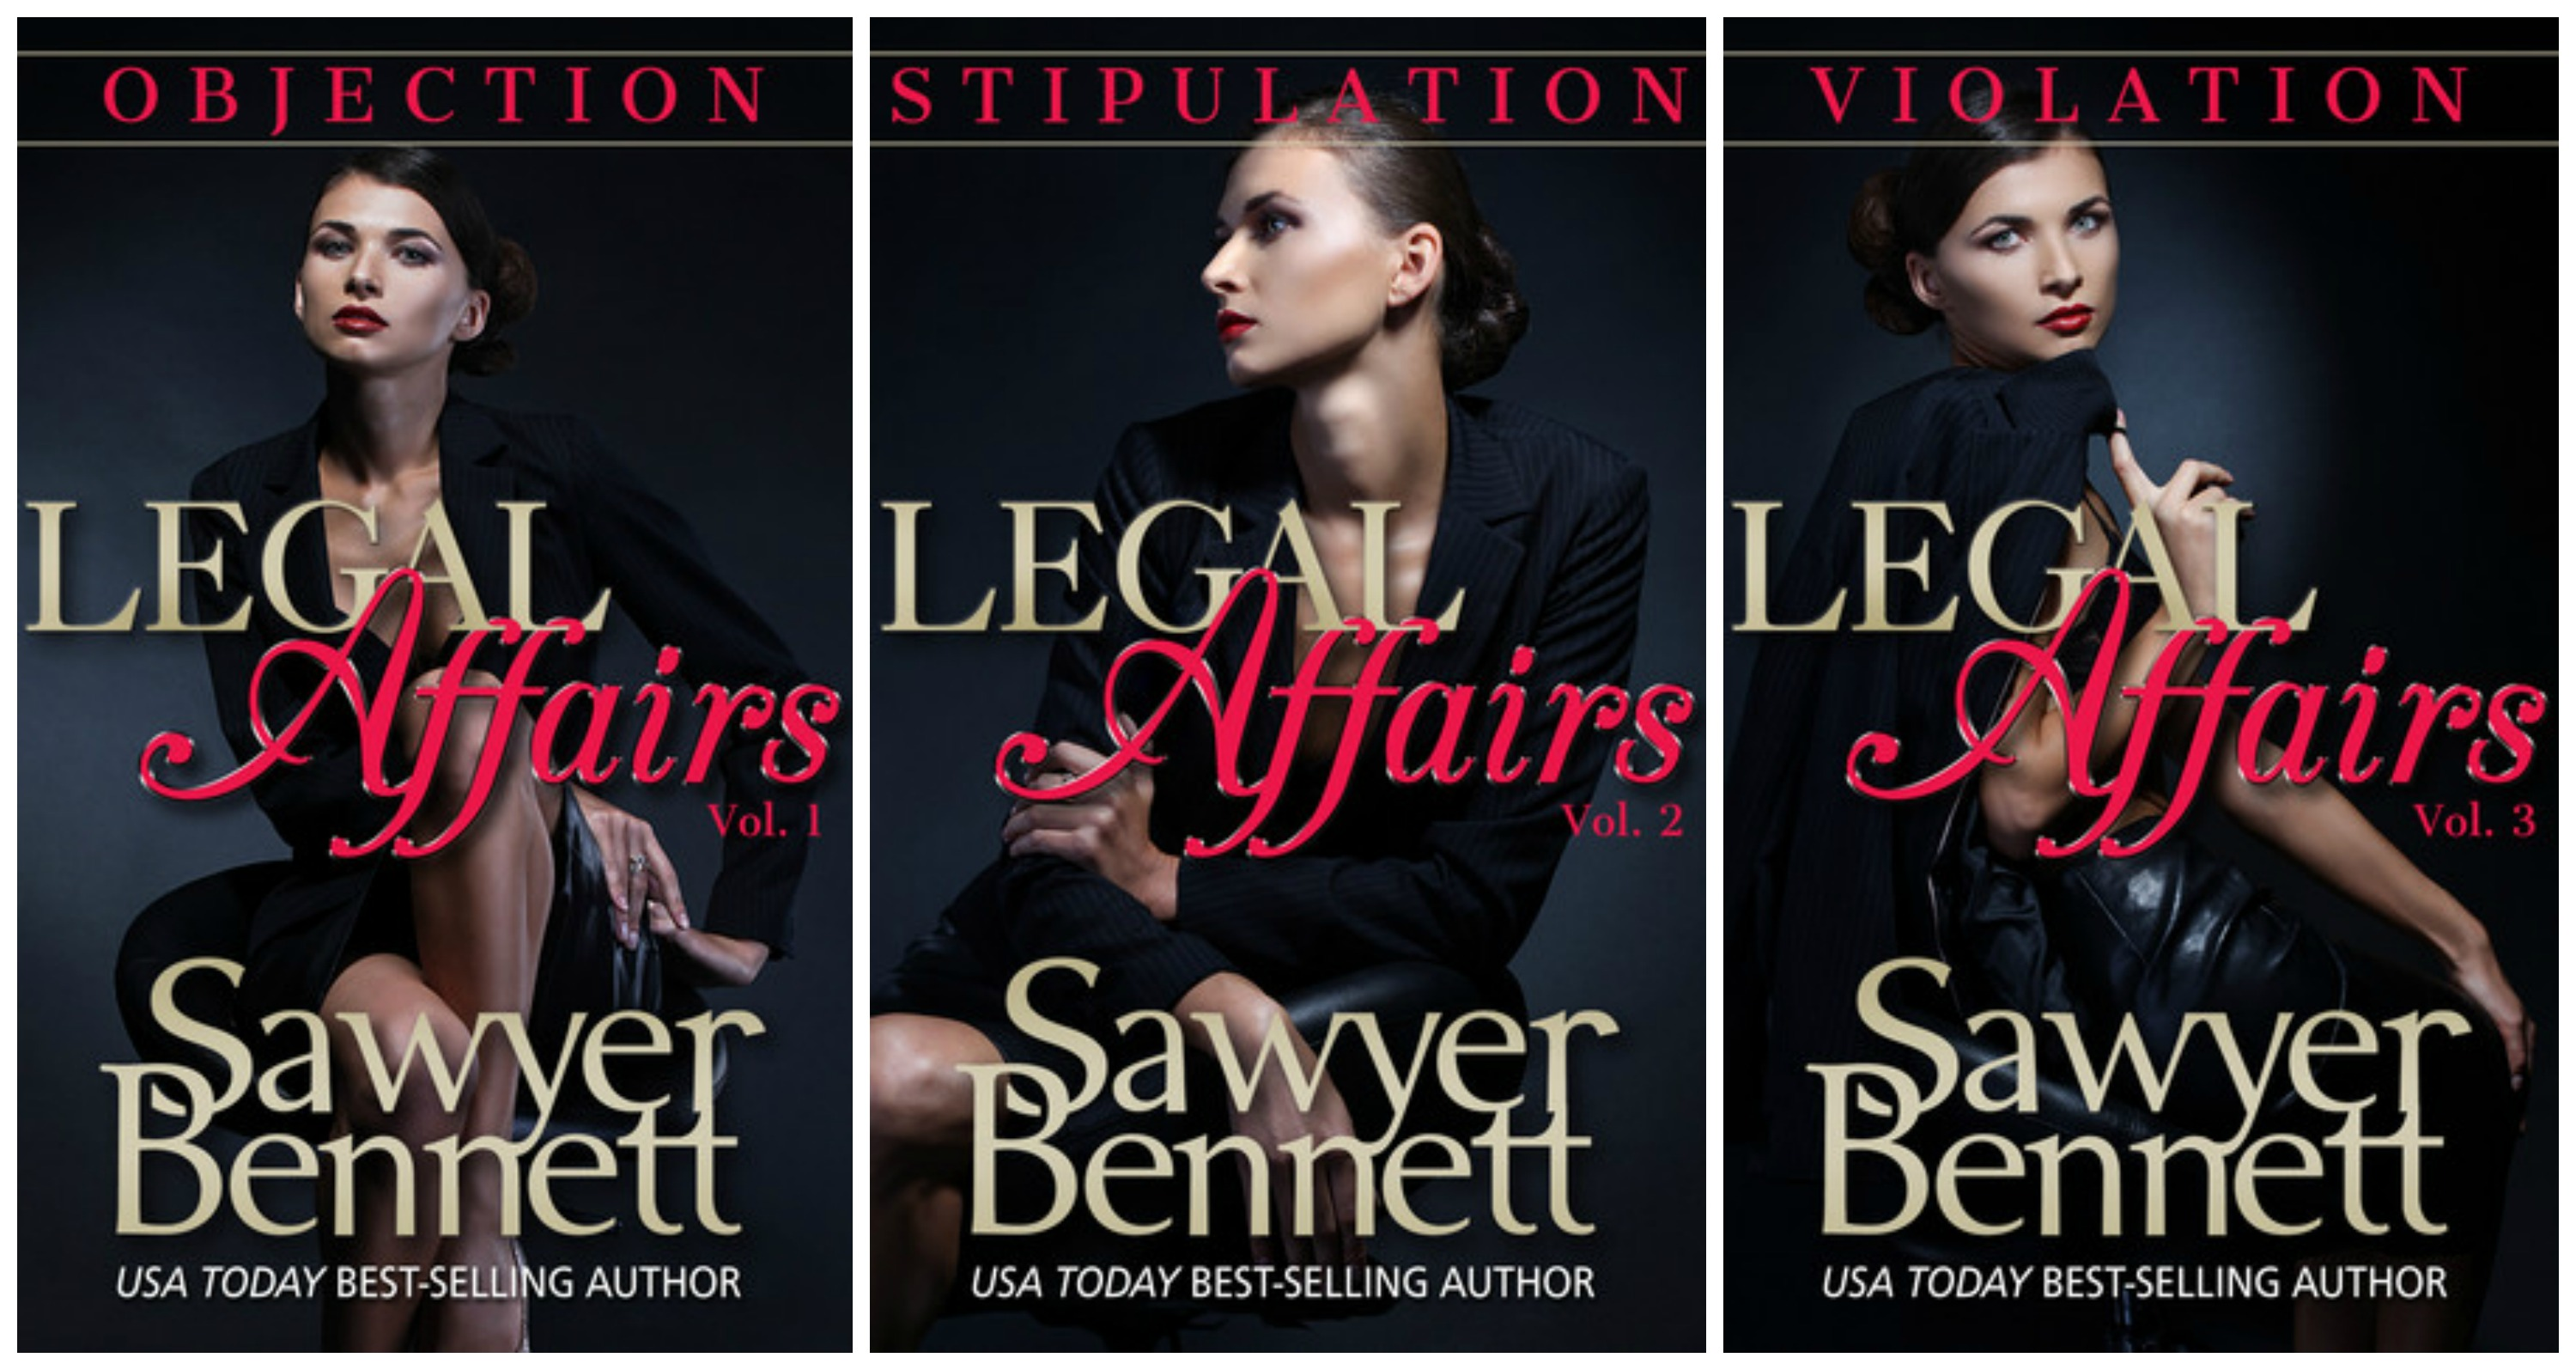 Legal Affairs 1-3 Covers